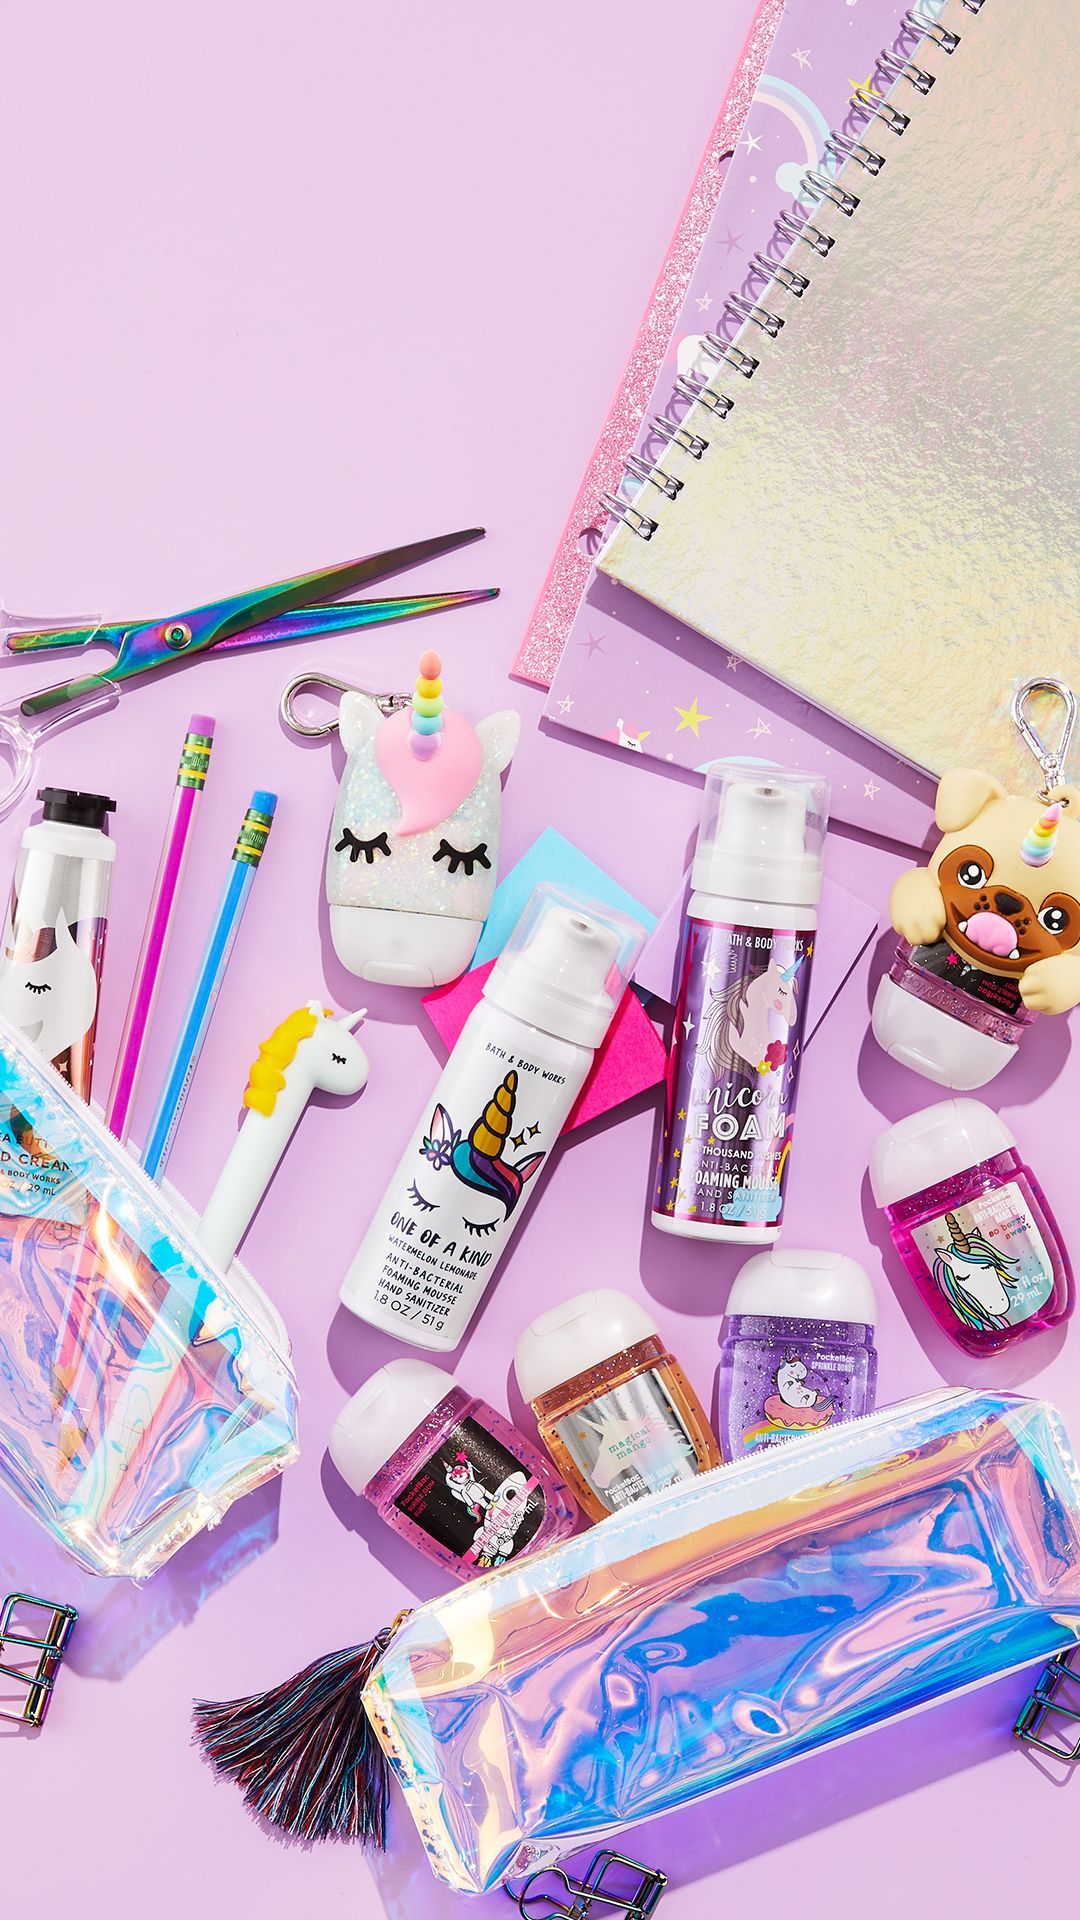 Pin By Yannibheasinya On Unicorn Better Hand Sanitizer Cute